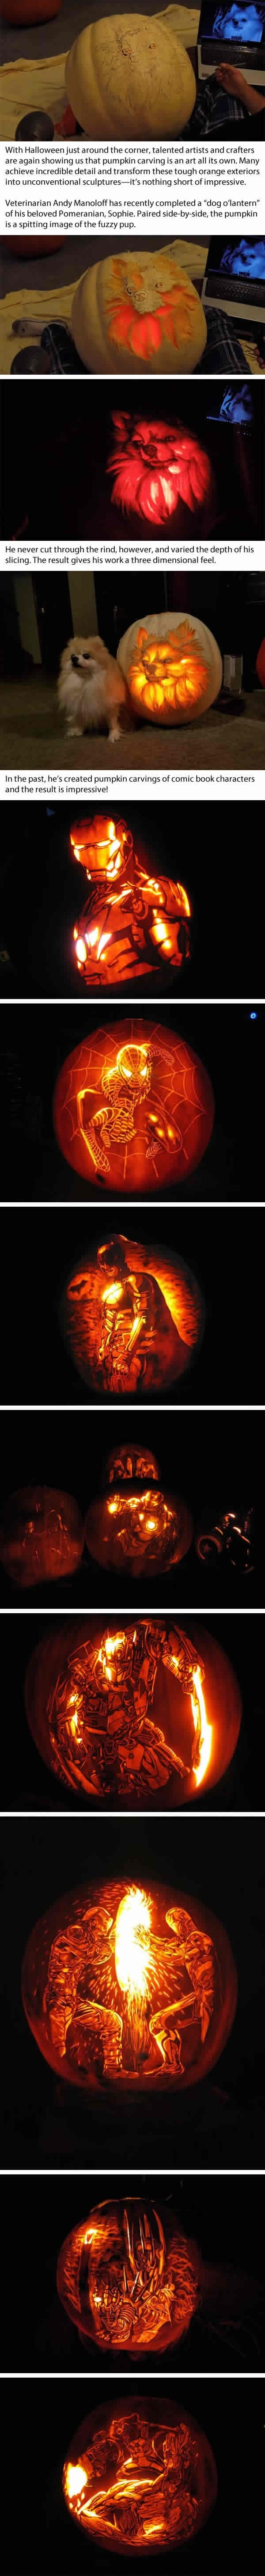 Veterinarian carves pumpkin into a lifelike Dog O' Lantern